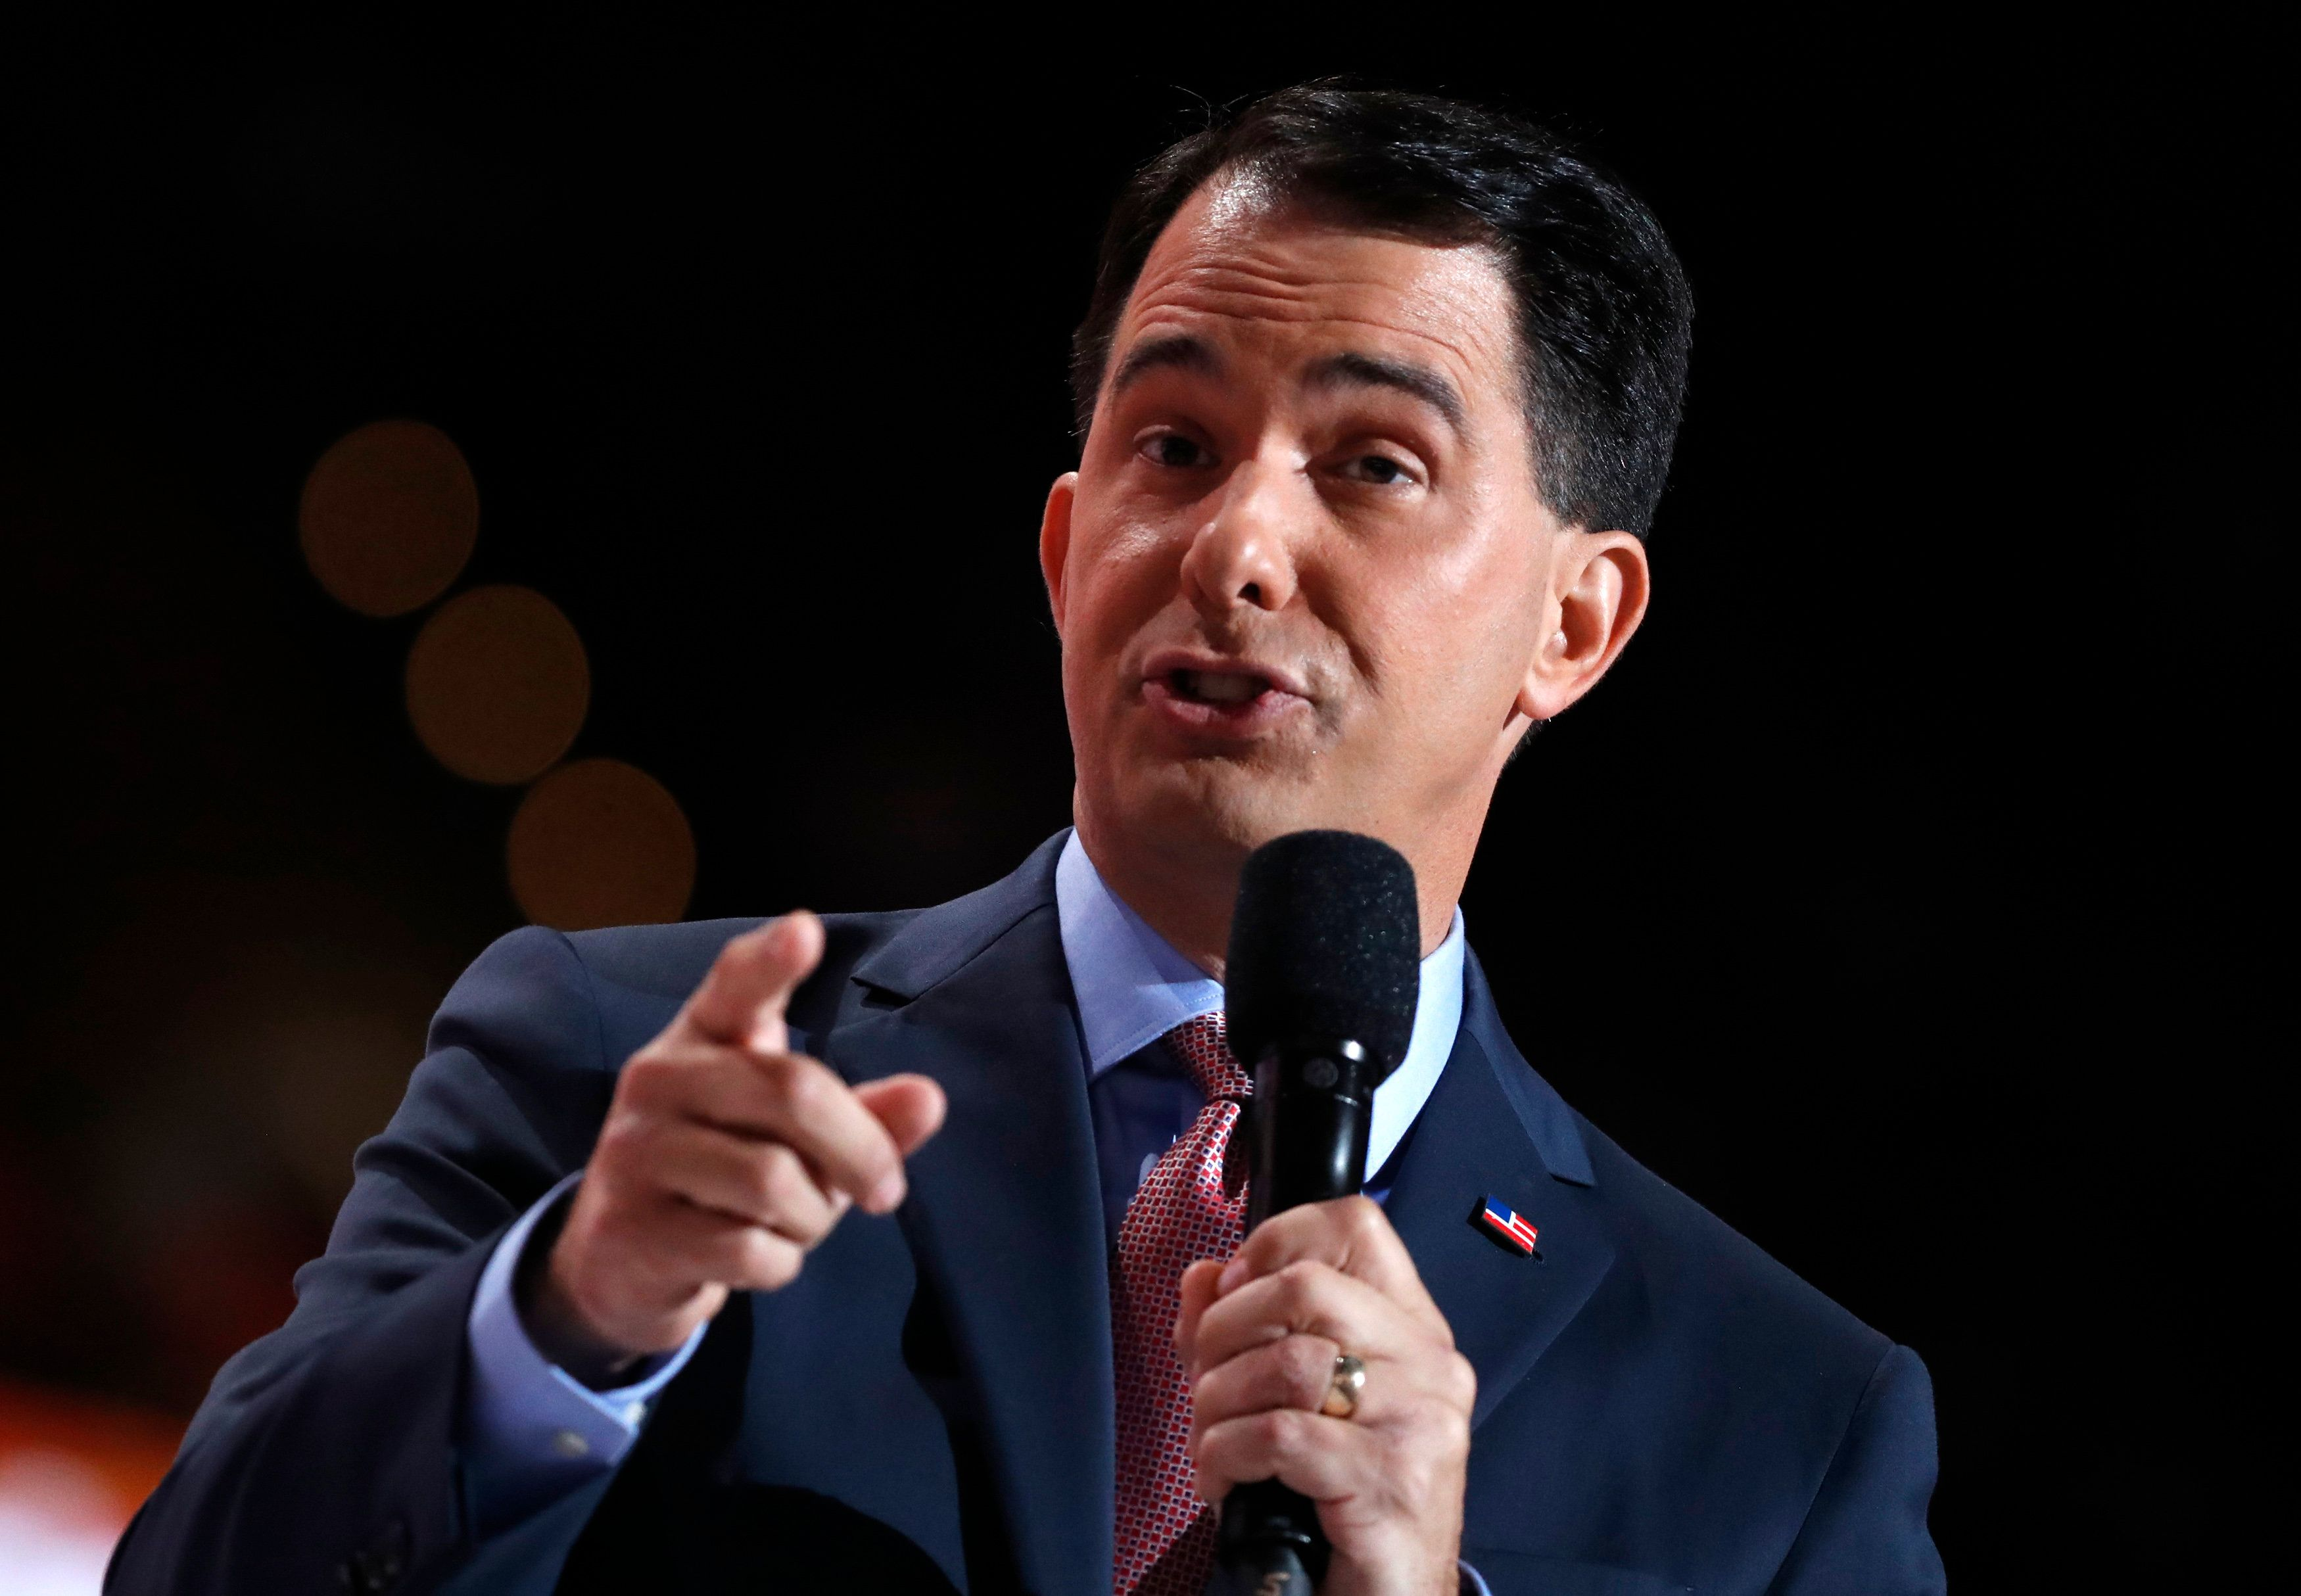 Former Republican U.S. presidential candidate and current Wisconsin Governor Scott Walker speaks during the third day of the Republican National Convention in Cleveland, Ohio, U.S. July 20, 2016.  REUTERS/Mark Kauzlarich